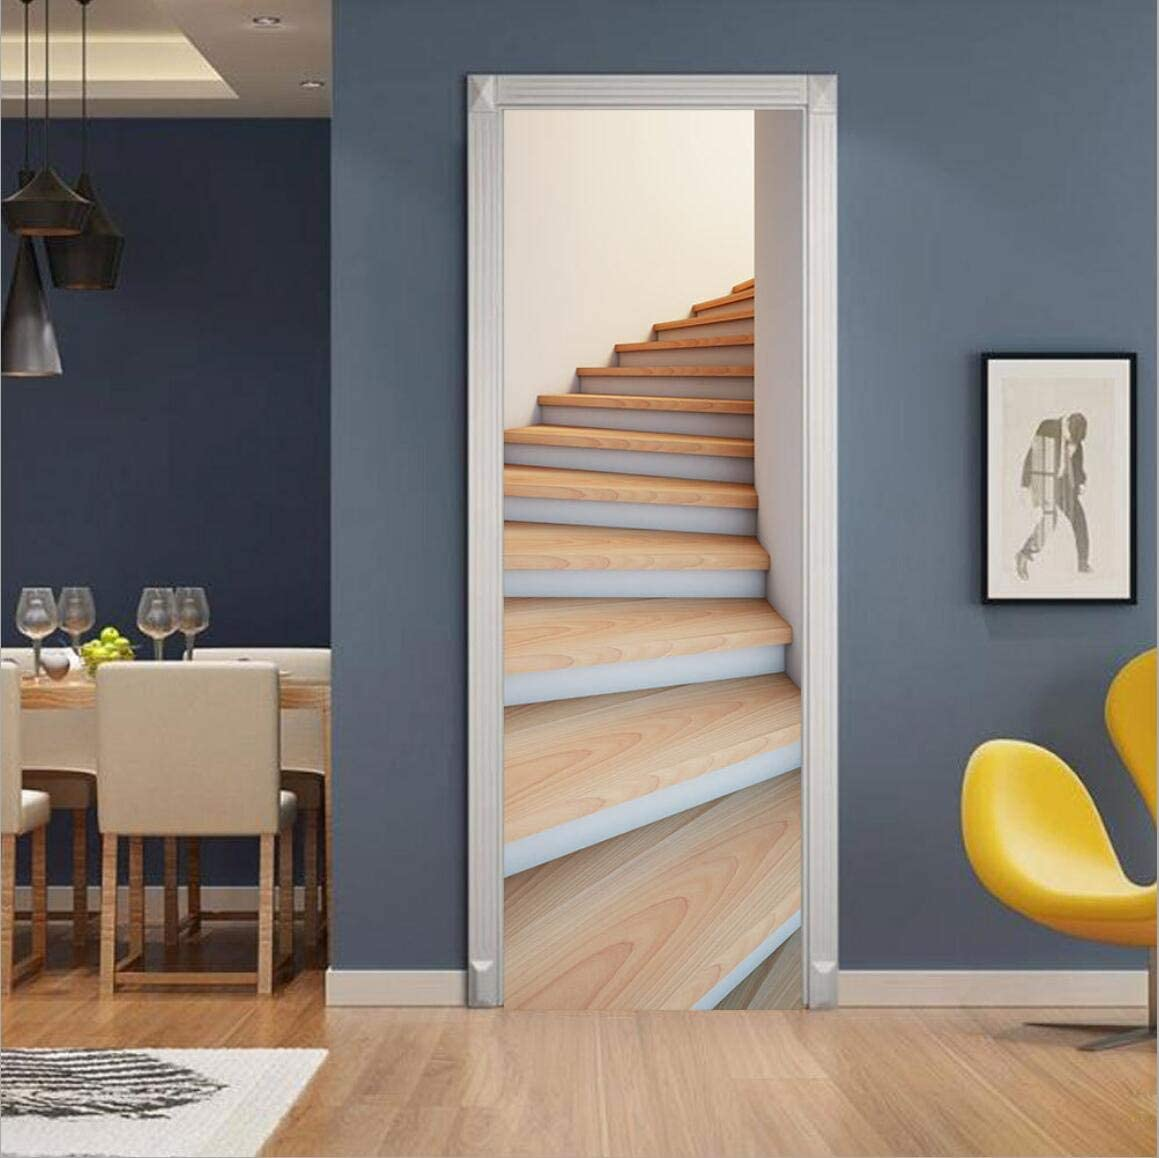 """MISSSIXTY 3D Staircase Door Wall Mural Wallpaper Stickers Vinyl Removable Decals for Home Decoration 30.3"""" x 78.7"""""""